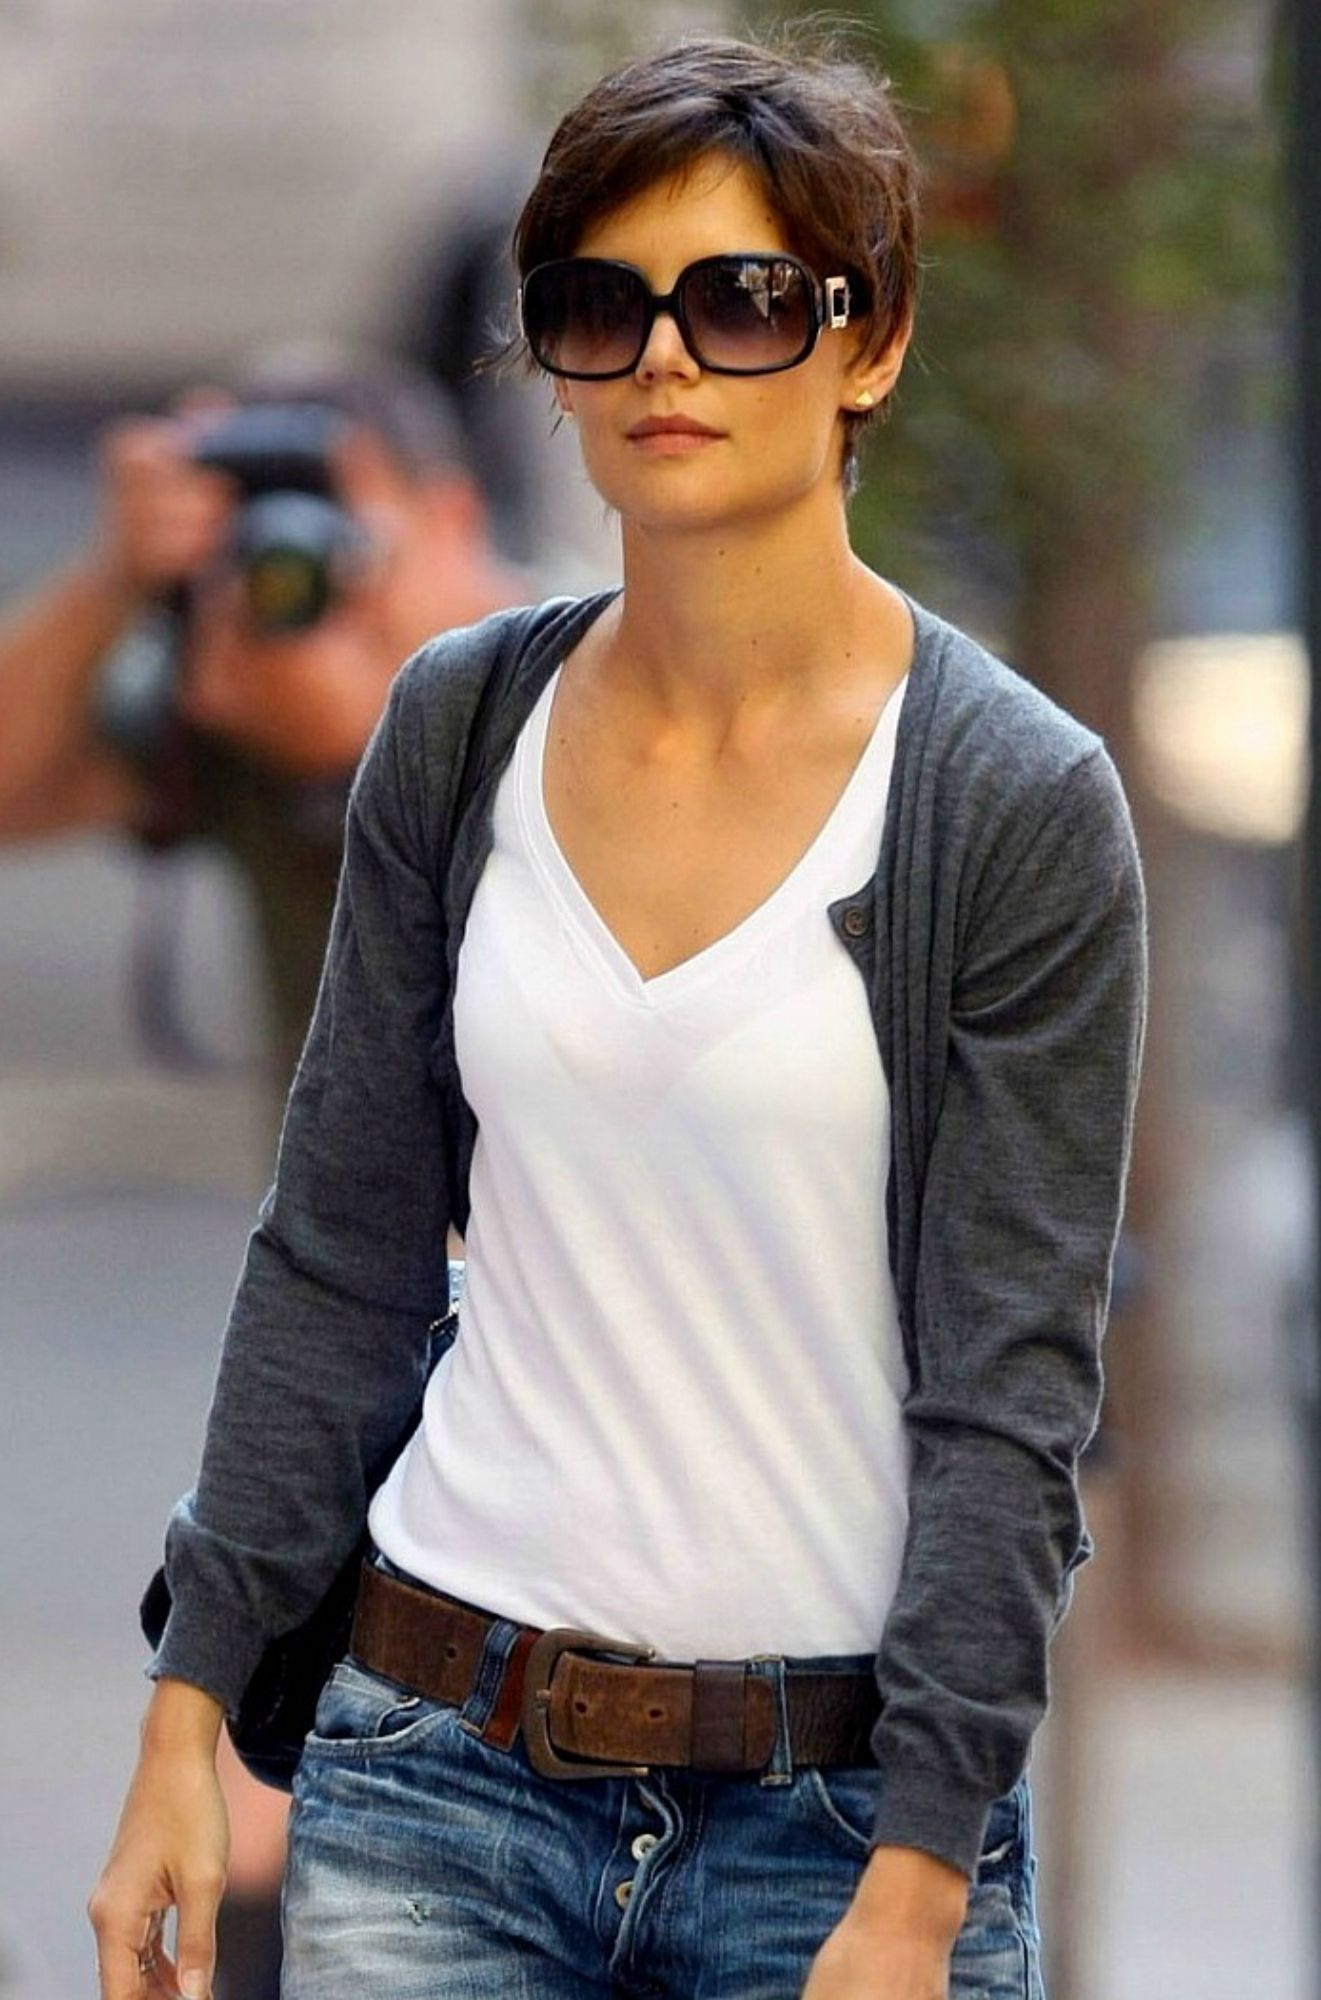 Katie Holmes Hairstyles Inspiration For Post Wedding Day Haircut  Everyday Hairstyles Long  Pinterest